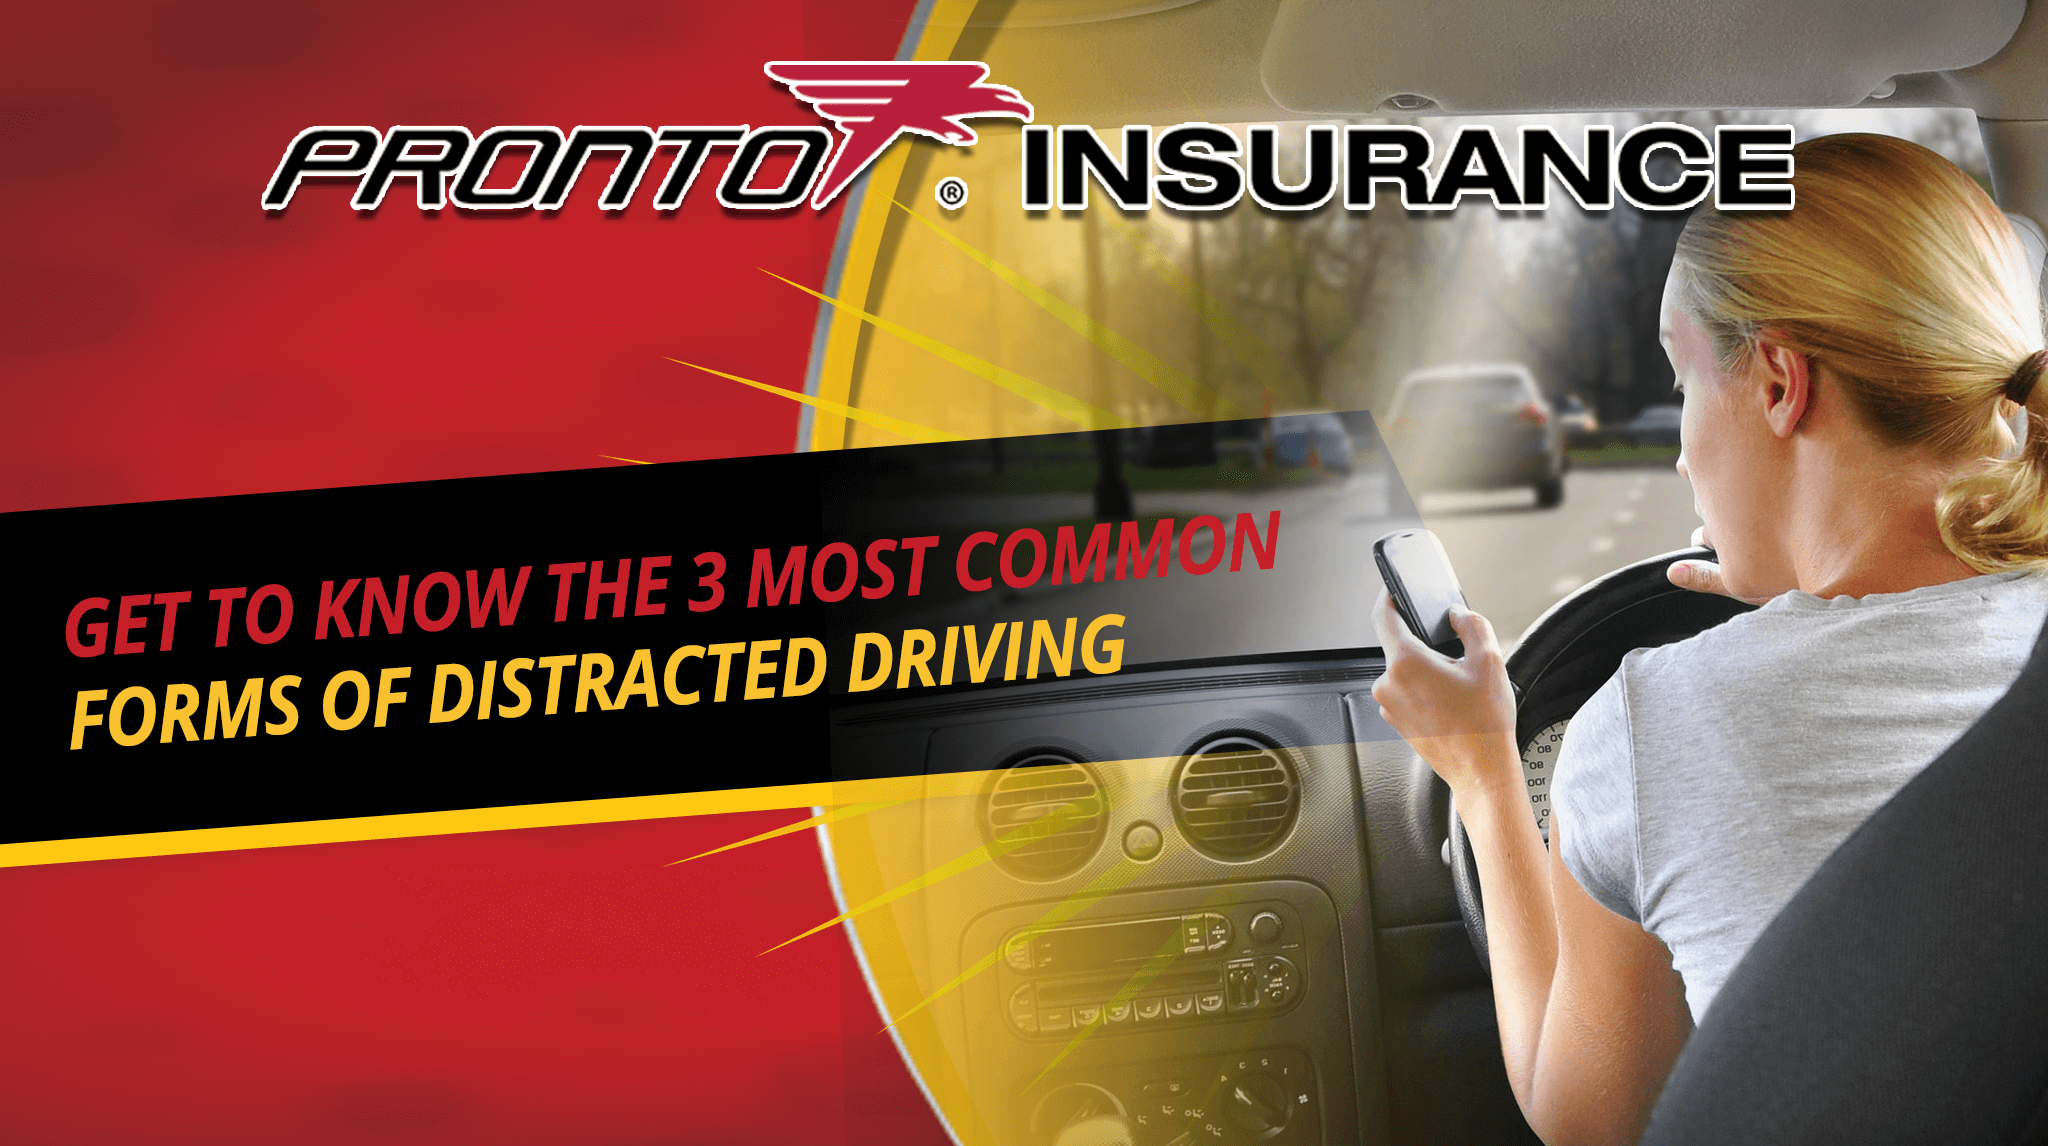 Get to Know the 3 Most Common Forms of Distracted Driving